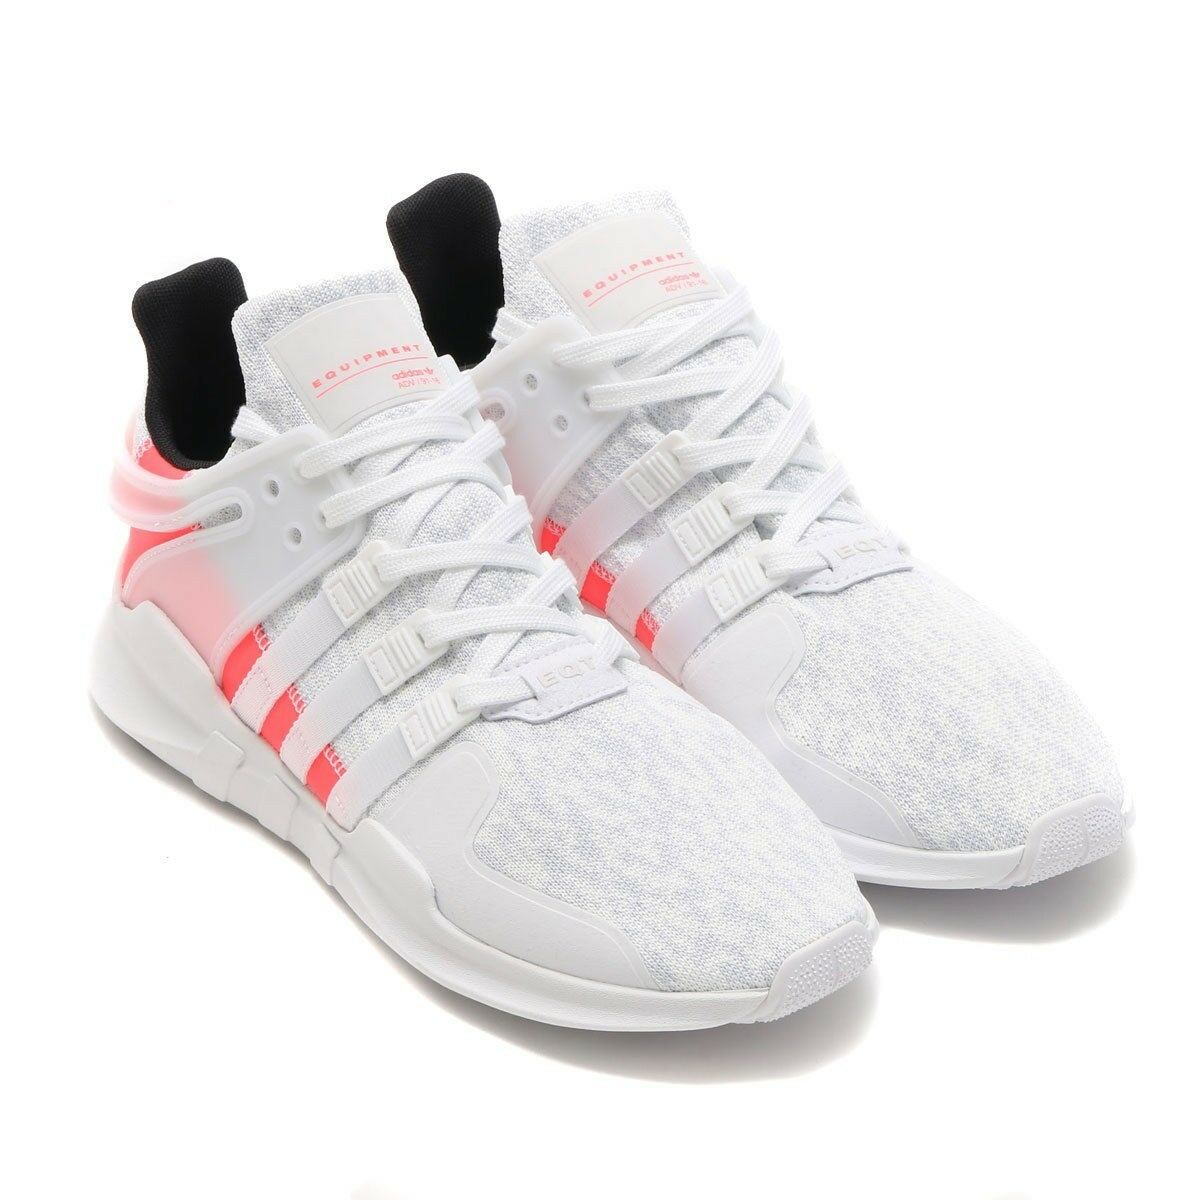 DeadStock Adidas EQT Equipment Support Support Support ADV - size 9 - White  Pink - BB2791 ... 9465ddbc8f5